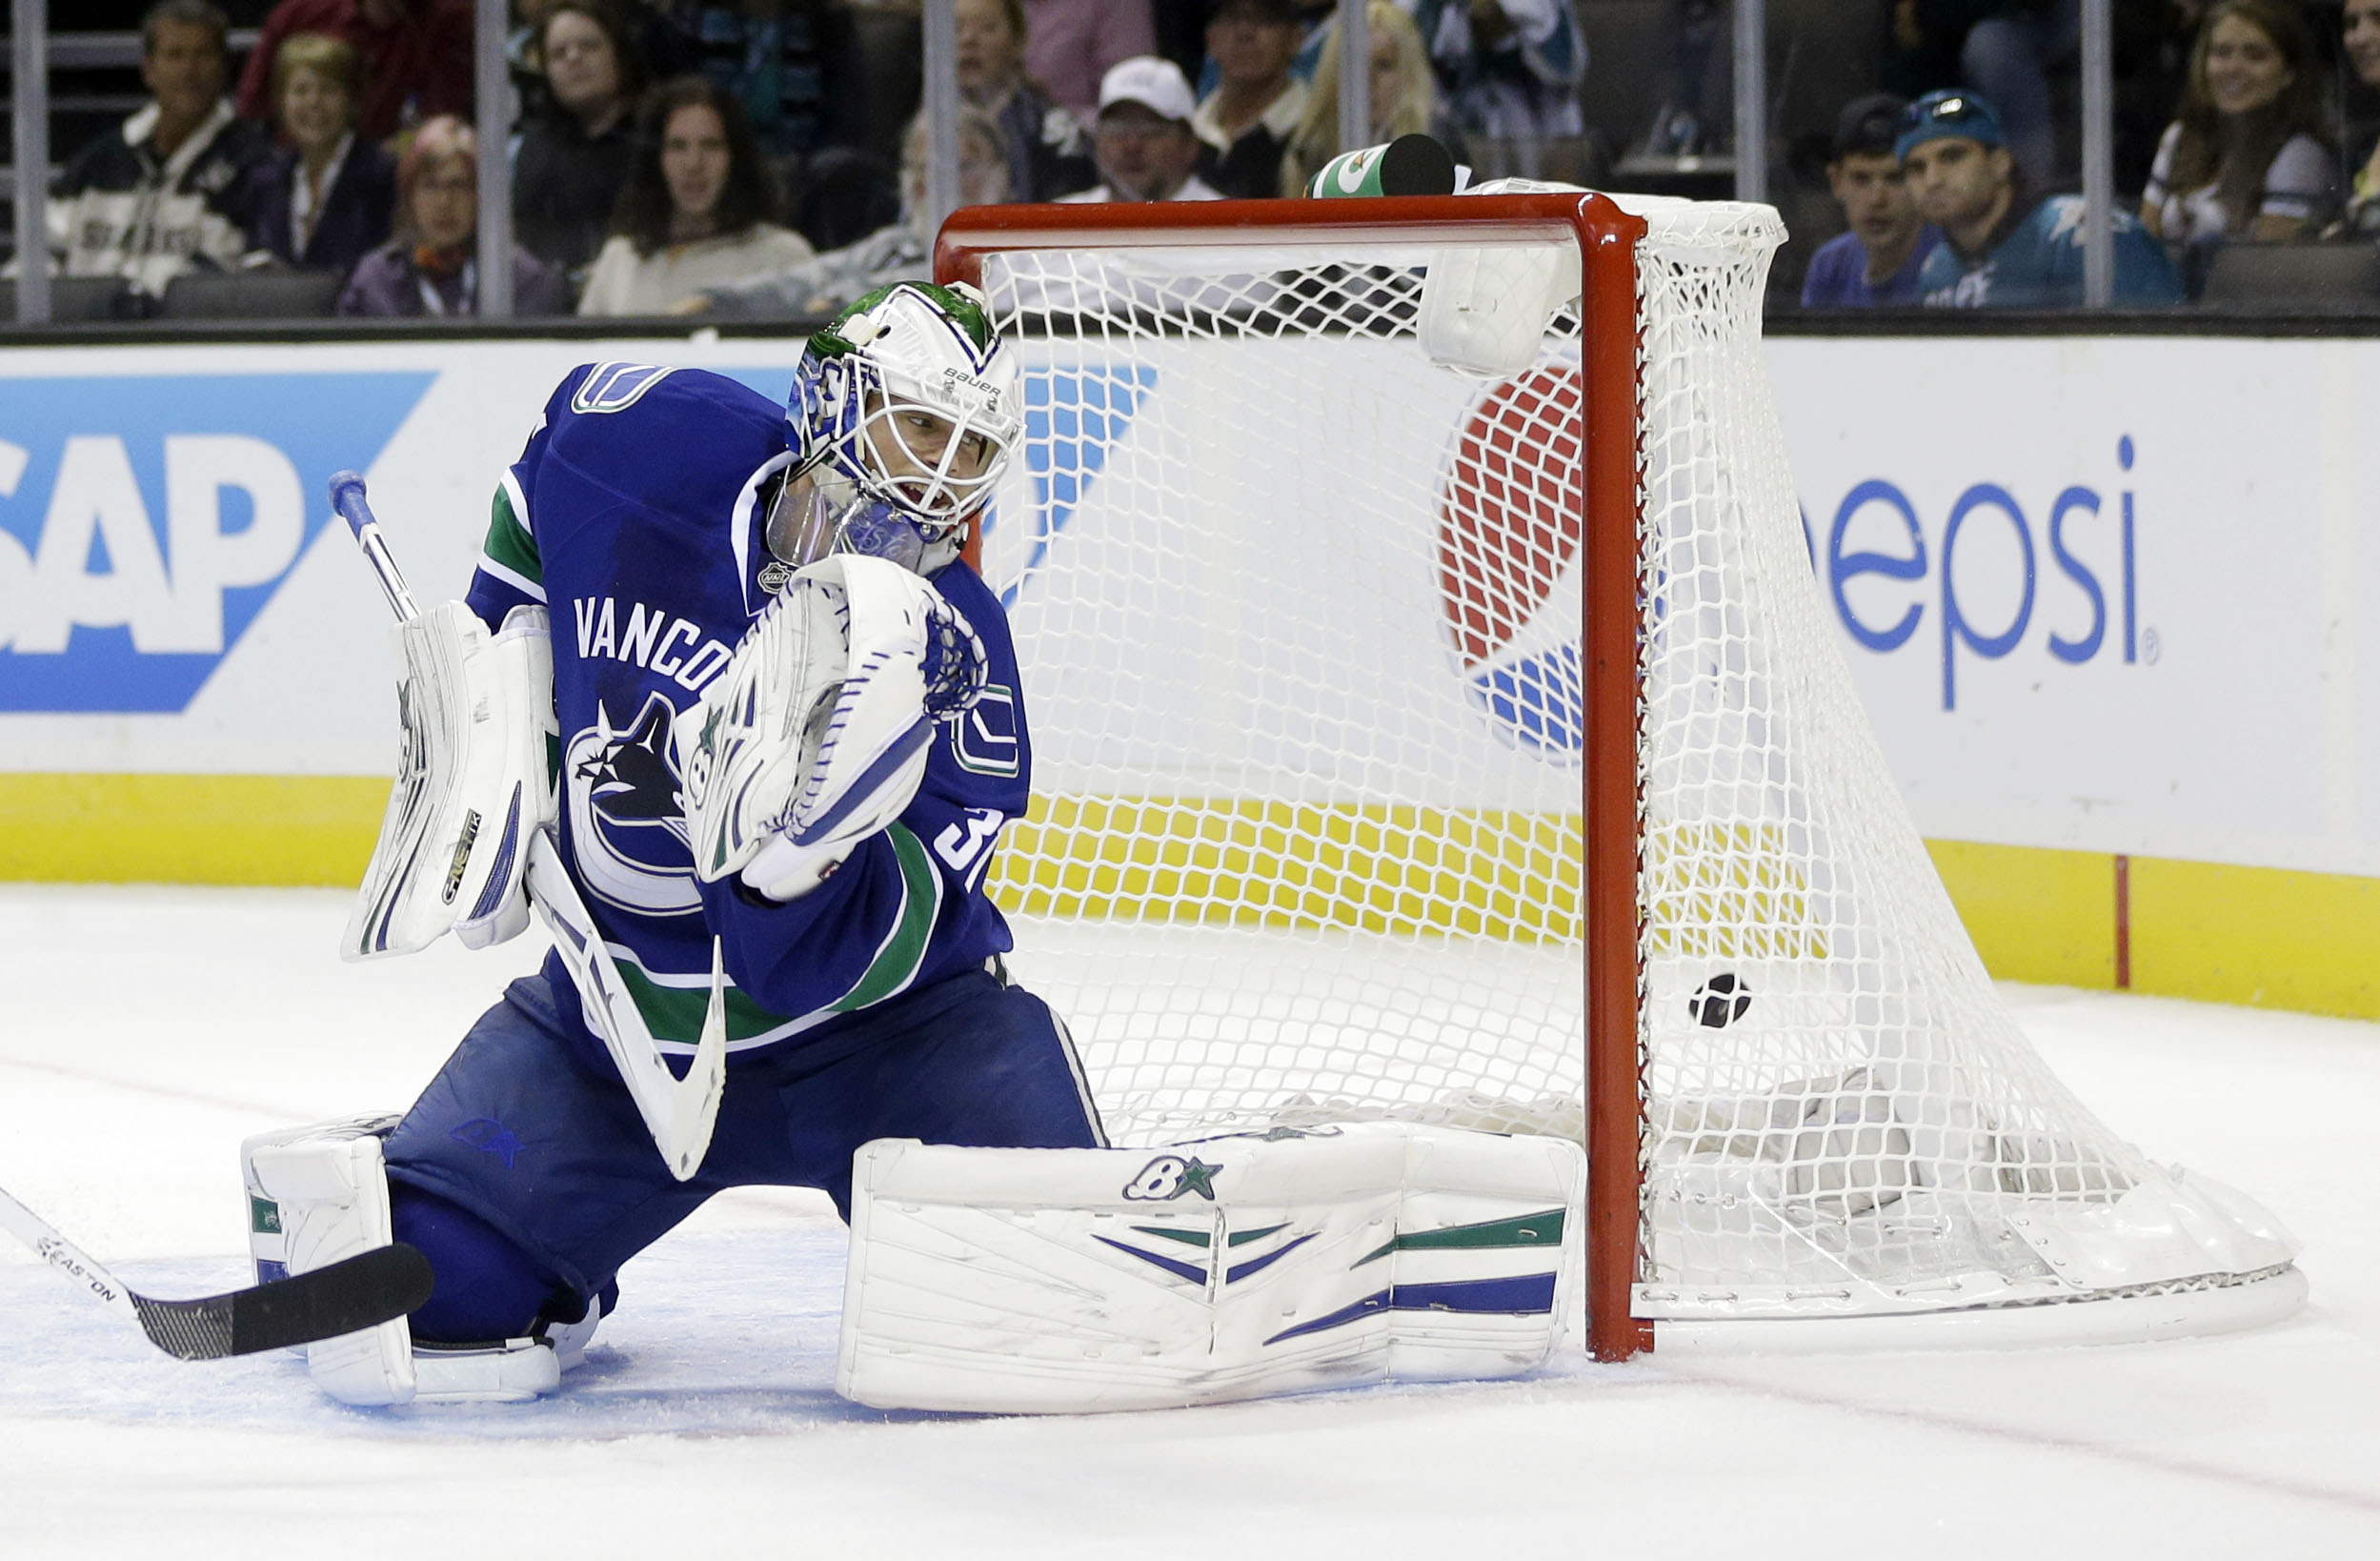 Vancouver Canucks goalie Eddie Lack is beaten for a goal on a shot from San Jose Sharks defenseman Dan Boyle during the first period of a preseason NHL hockey game on Tuesday, Sept. 24, 2013, in San Jose, Calif